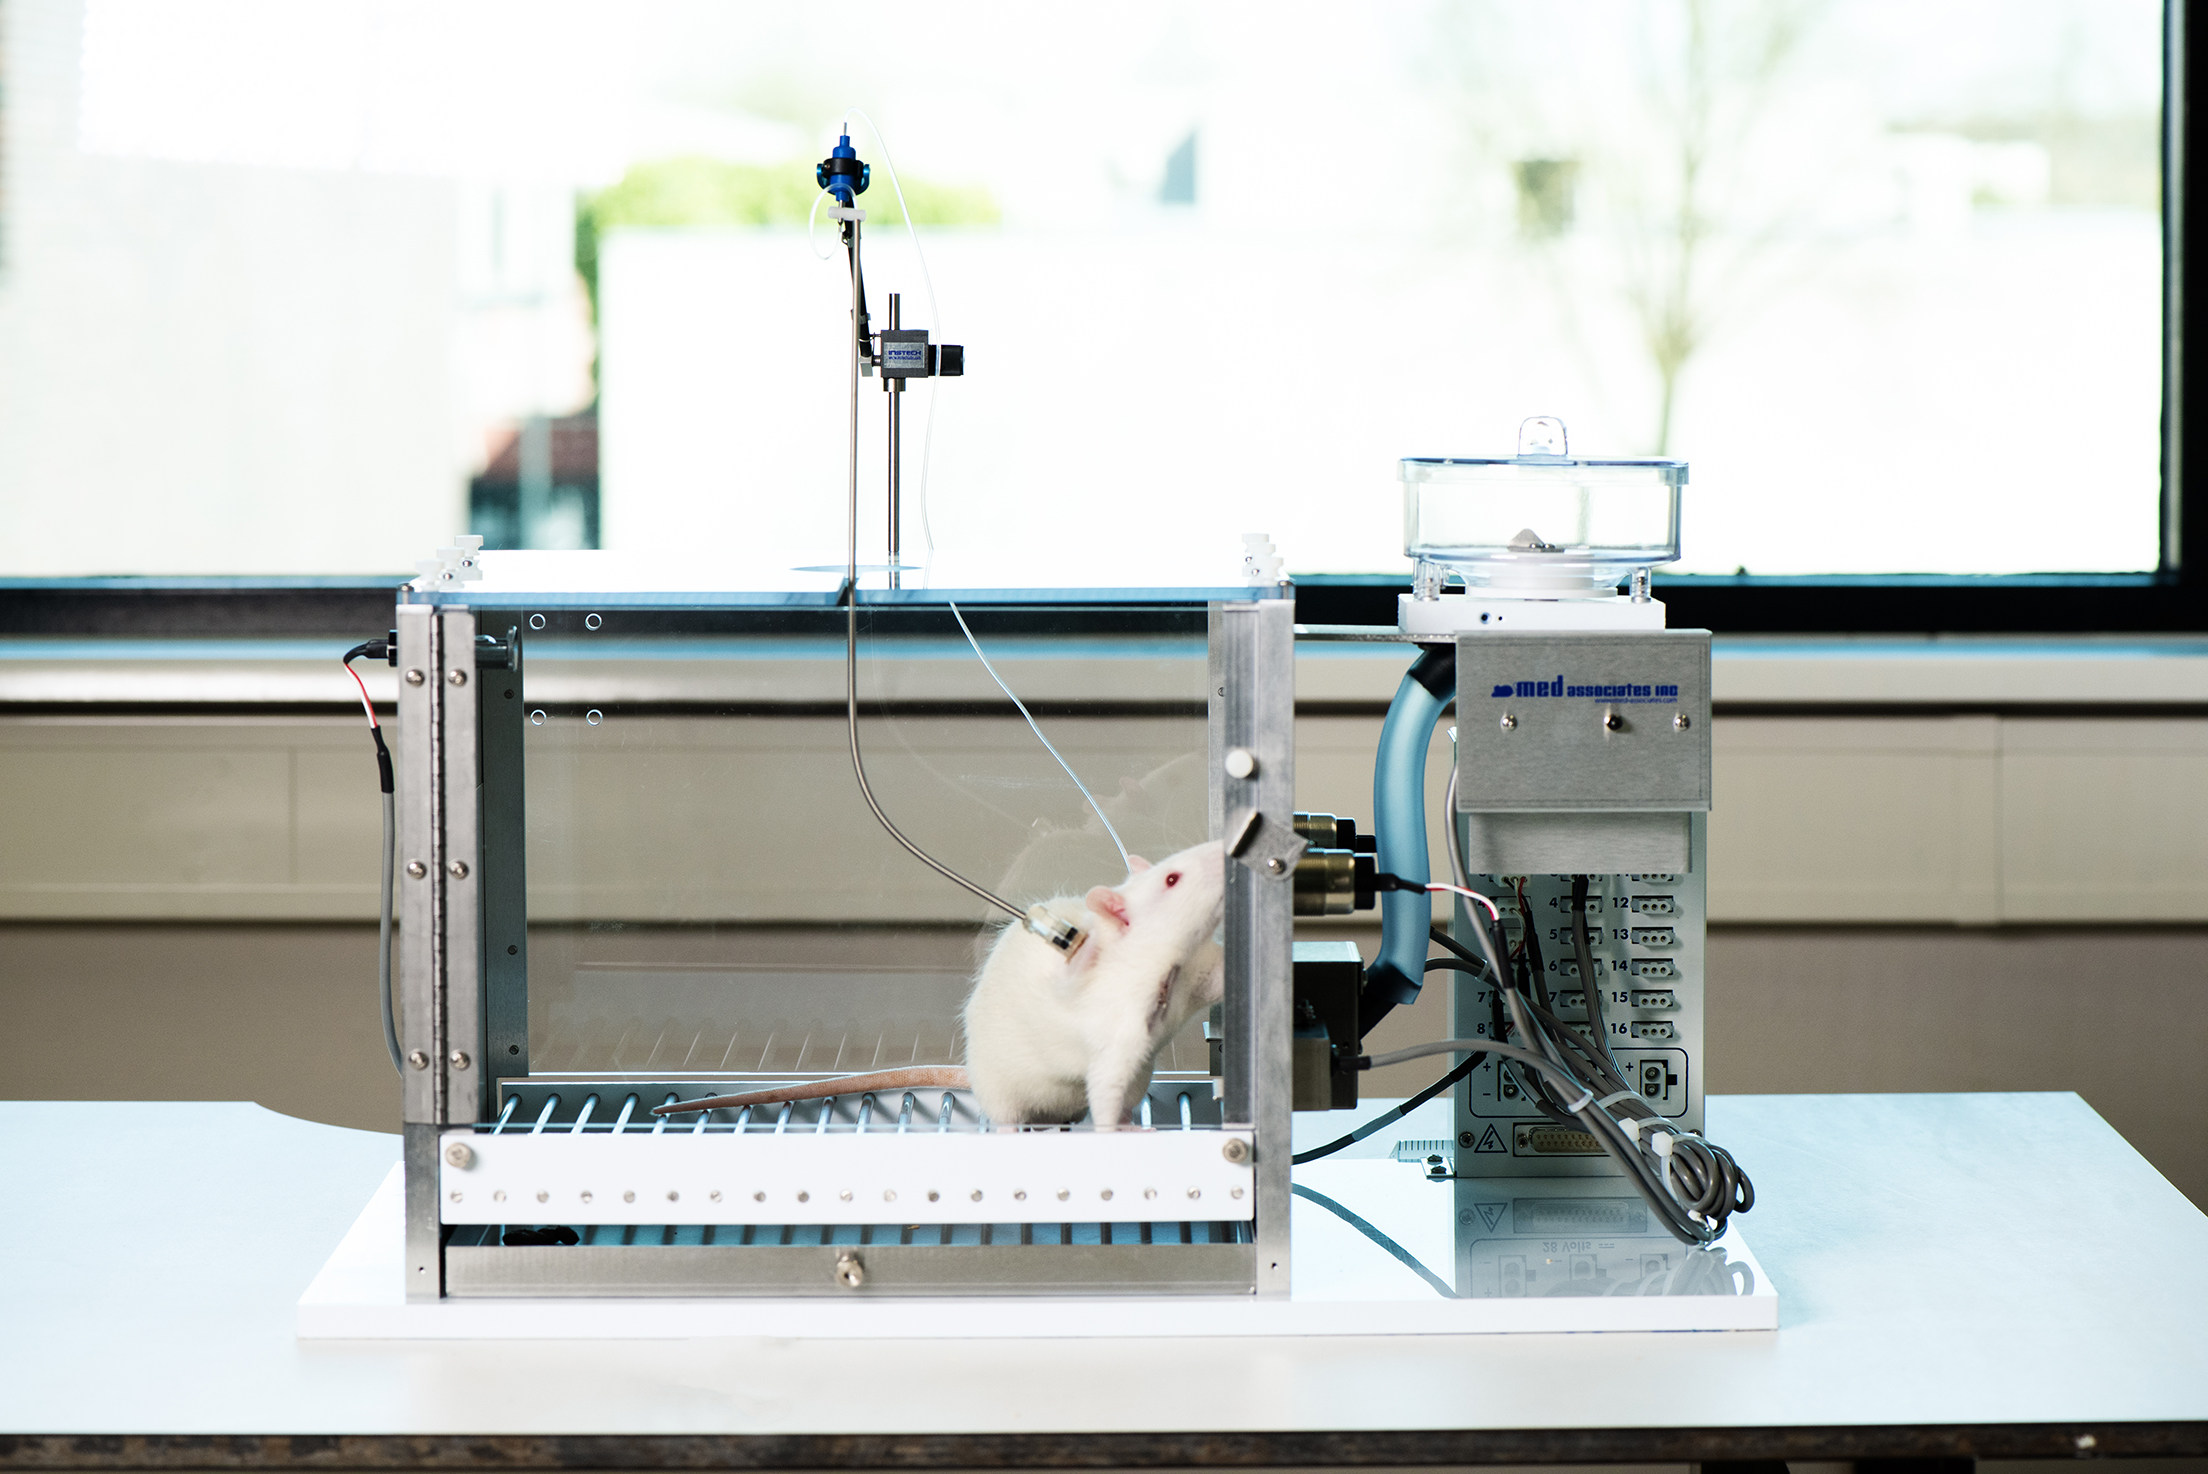 IV Self Administration Equipment for Rats